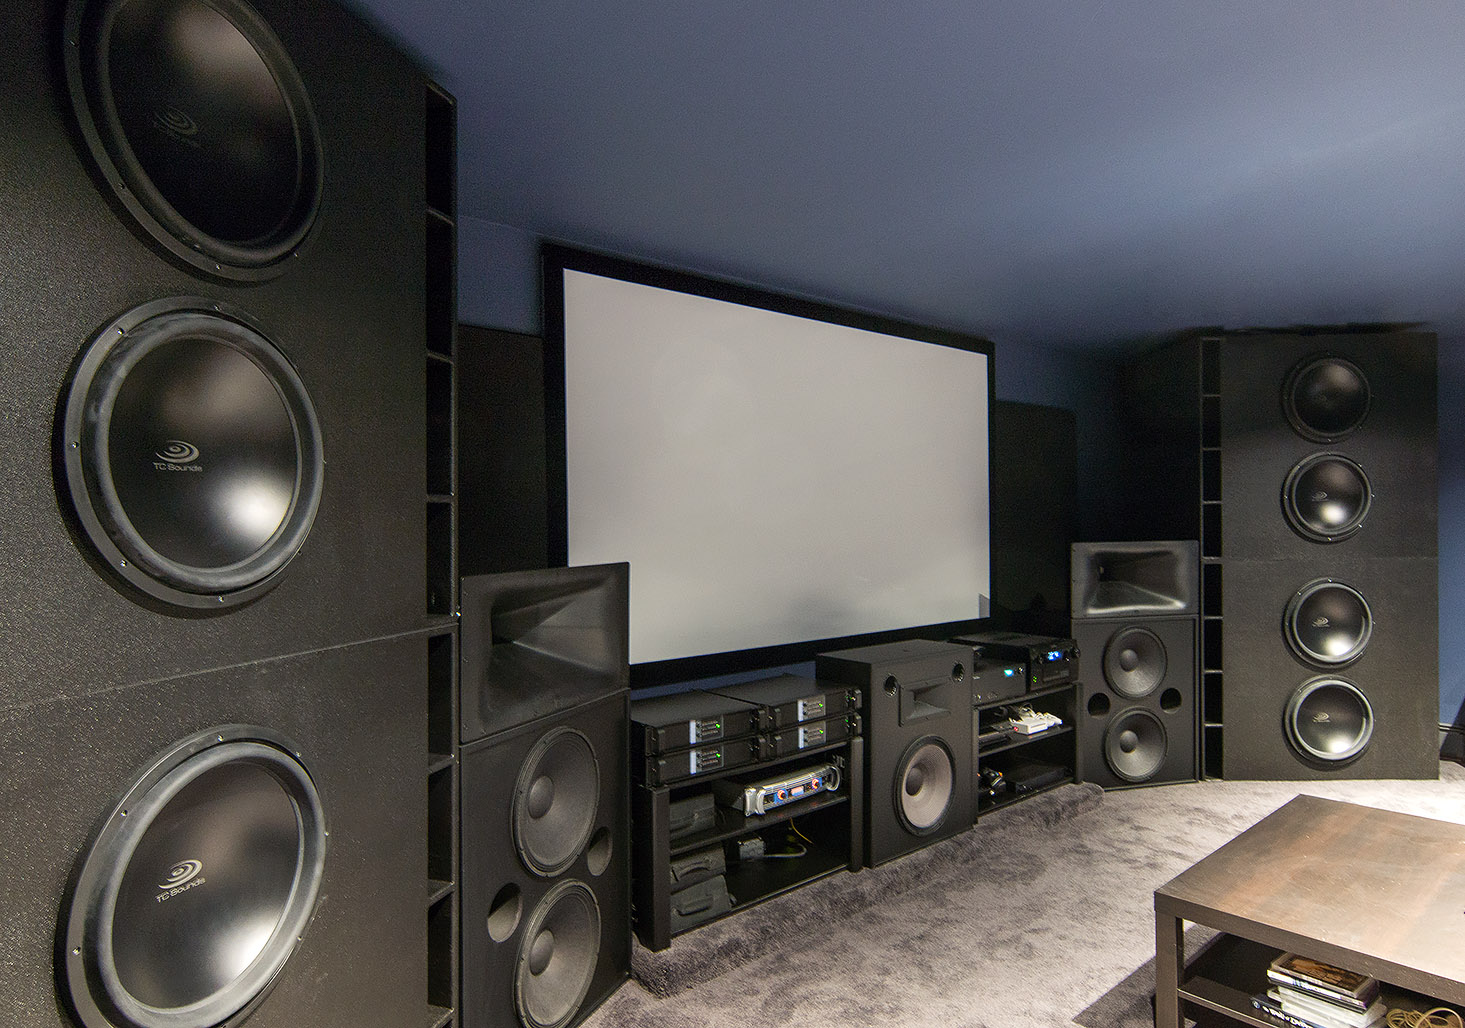 Best Rated Subwoofer For Home Theater